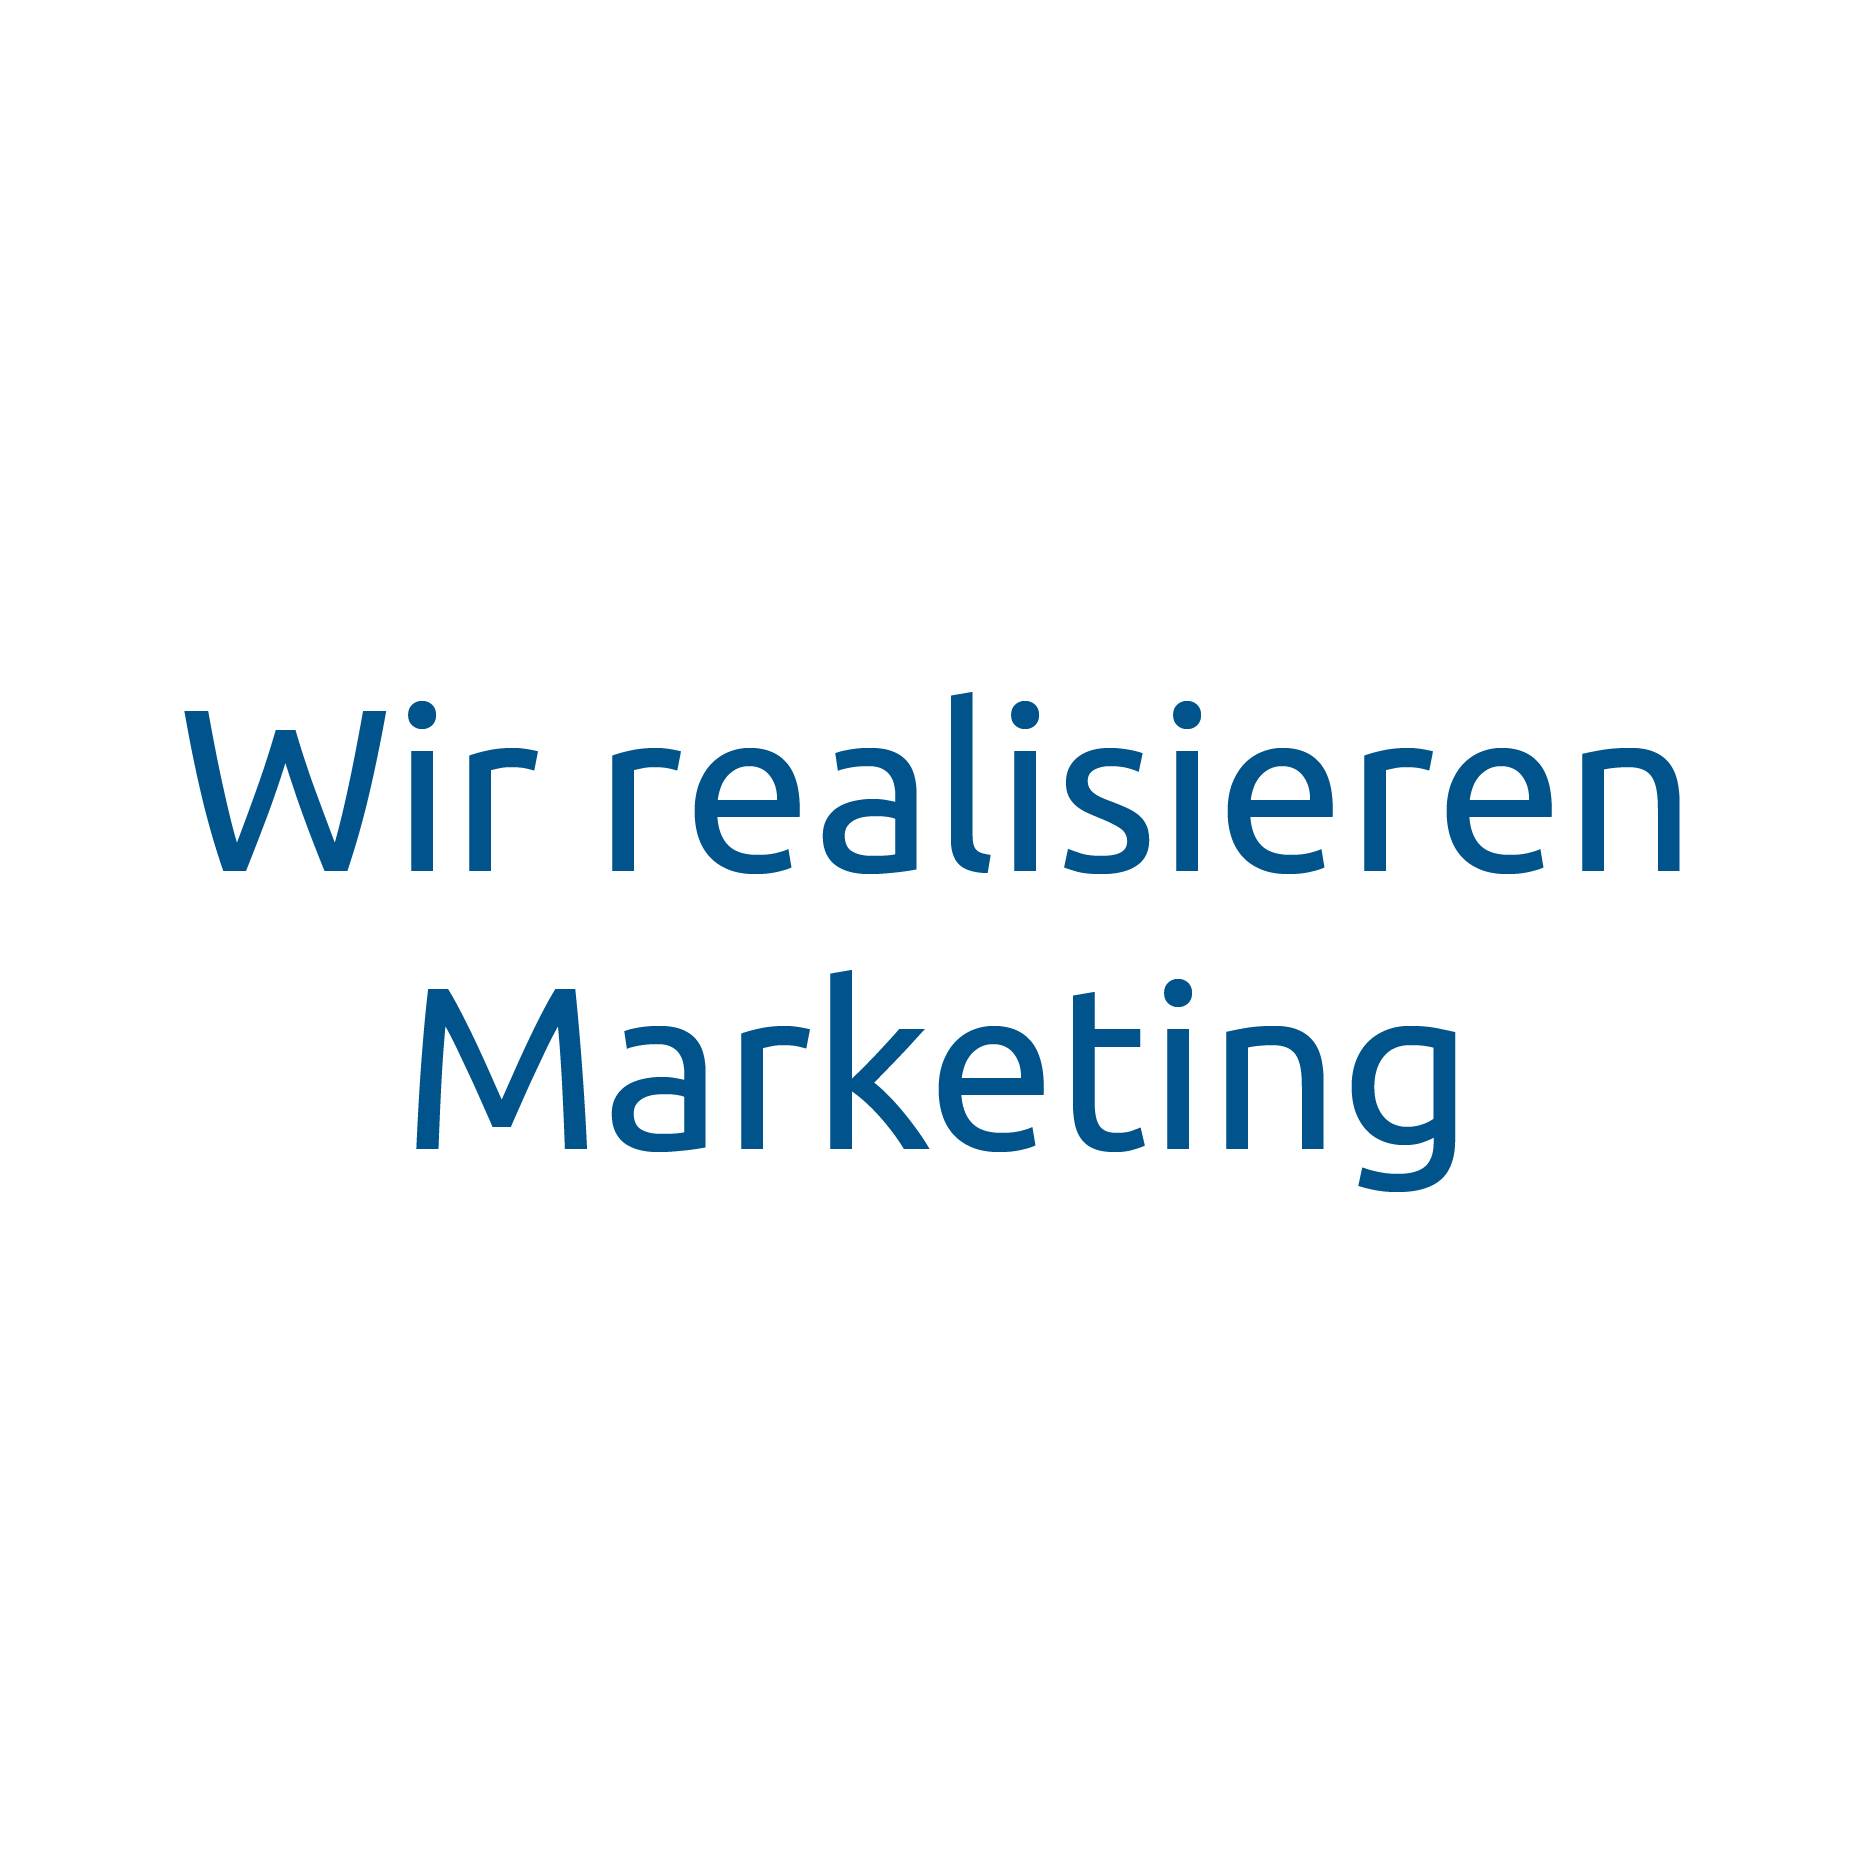 raumprofil Marketing - Wir realisieren Marketing